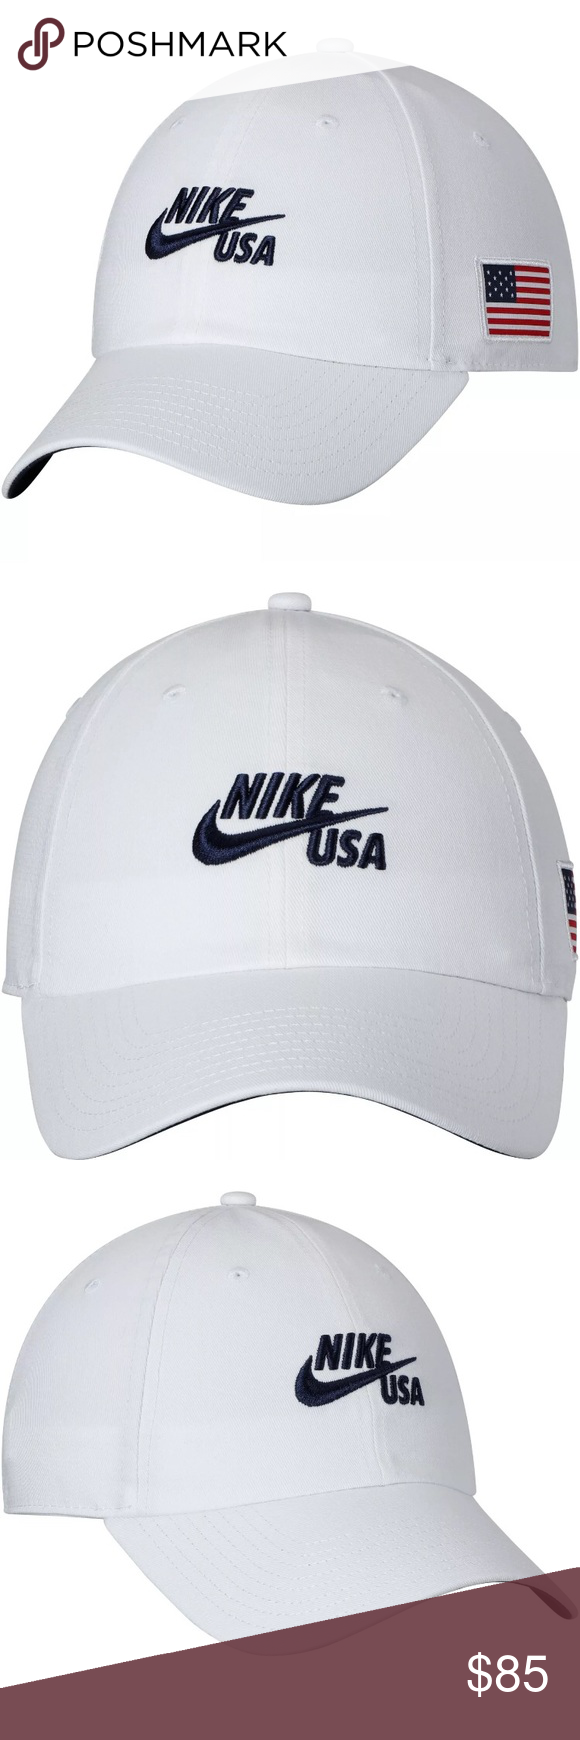 3e99c77243243 New Nike USA 🇺🇸 Olympic hat adjustable Limited Edition Nike 2018 South  Korea Olympics Team USA Nike 86 Americana Hat! These are a great way to  show ...